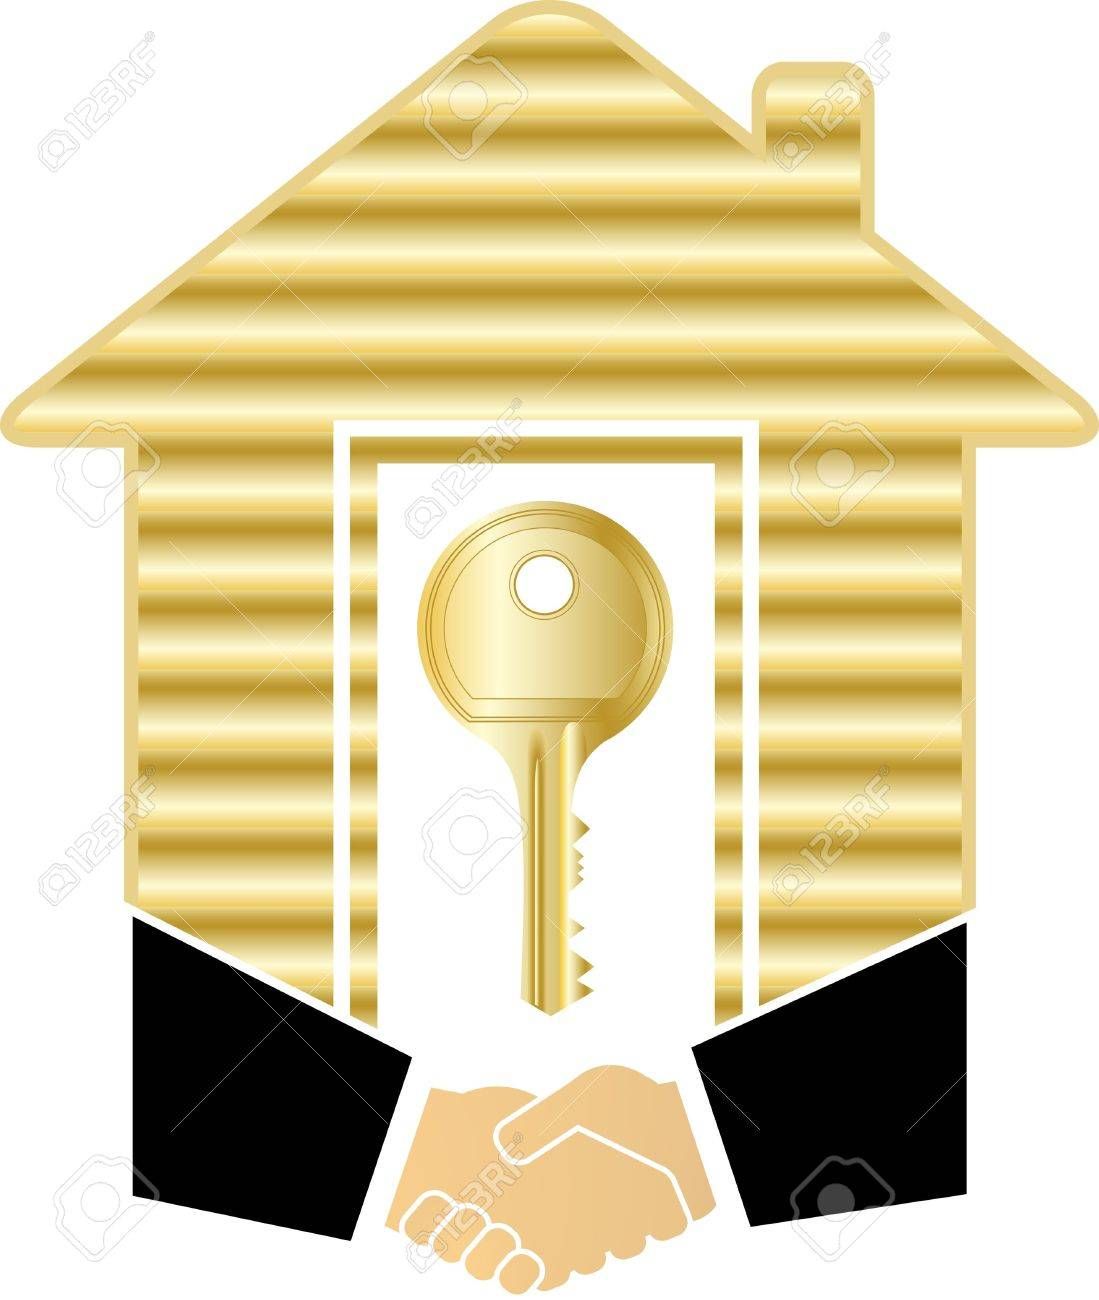 gold house key. symbol of safety and success with handshake gold house key stock vector 12340604